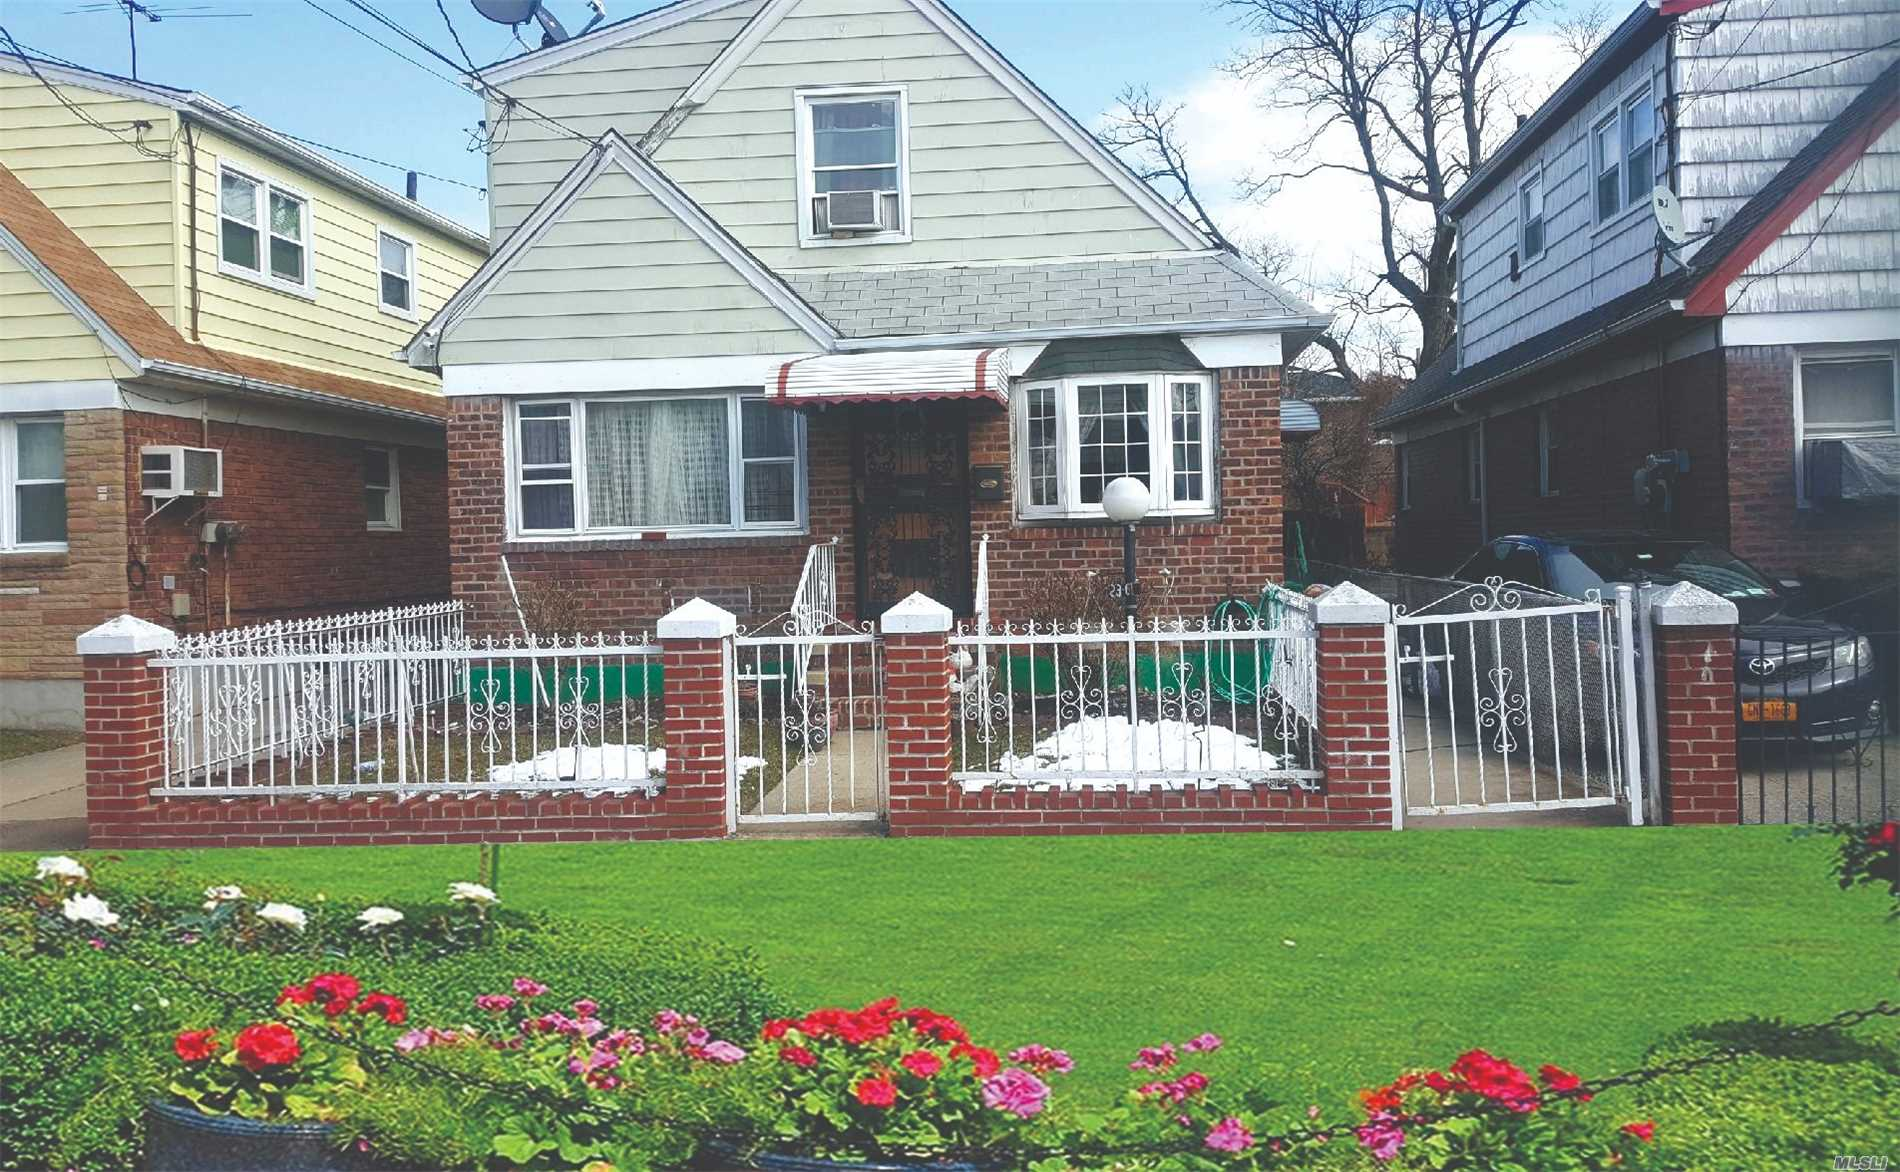 Very Good Location Nice 2 Family Detached Property With Nice Backyard Full Finished Basement With Os.E.Close To School Ps 127 - District 30. Close To Public Transportation: Q48 To Main St, Q72 & Q19/19B & Also Walking Distance To Laguardia Airport Terminals.